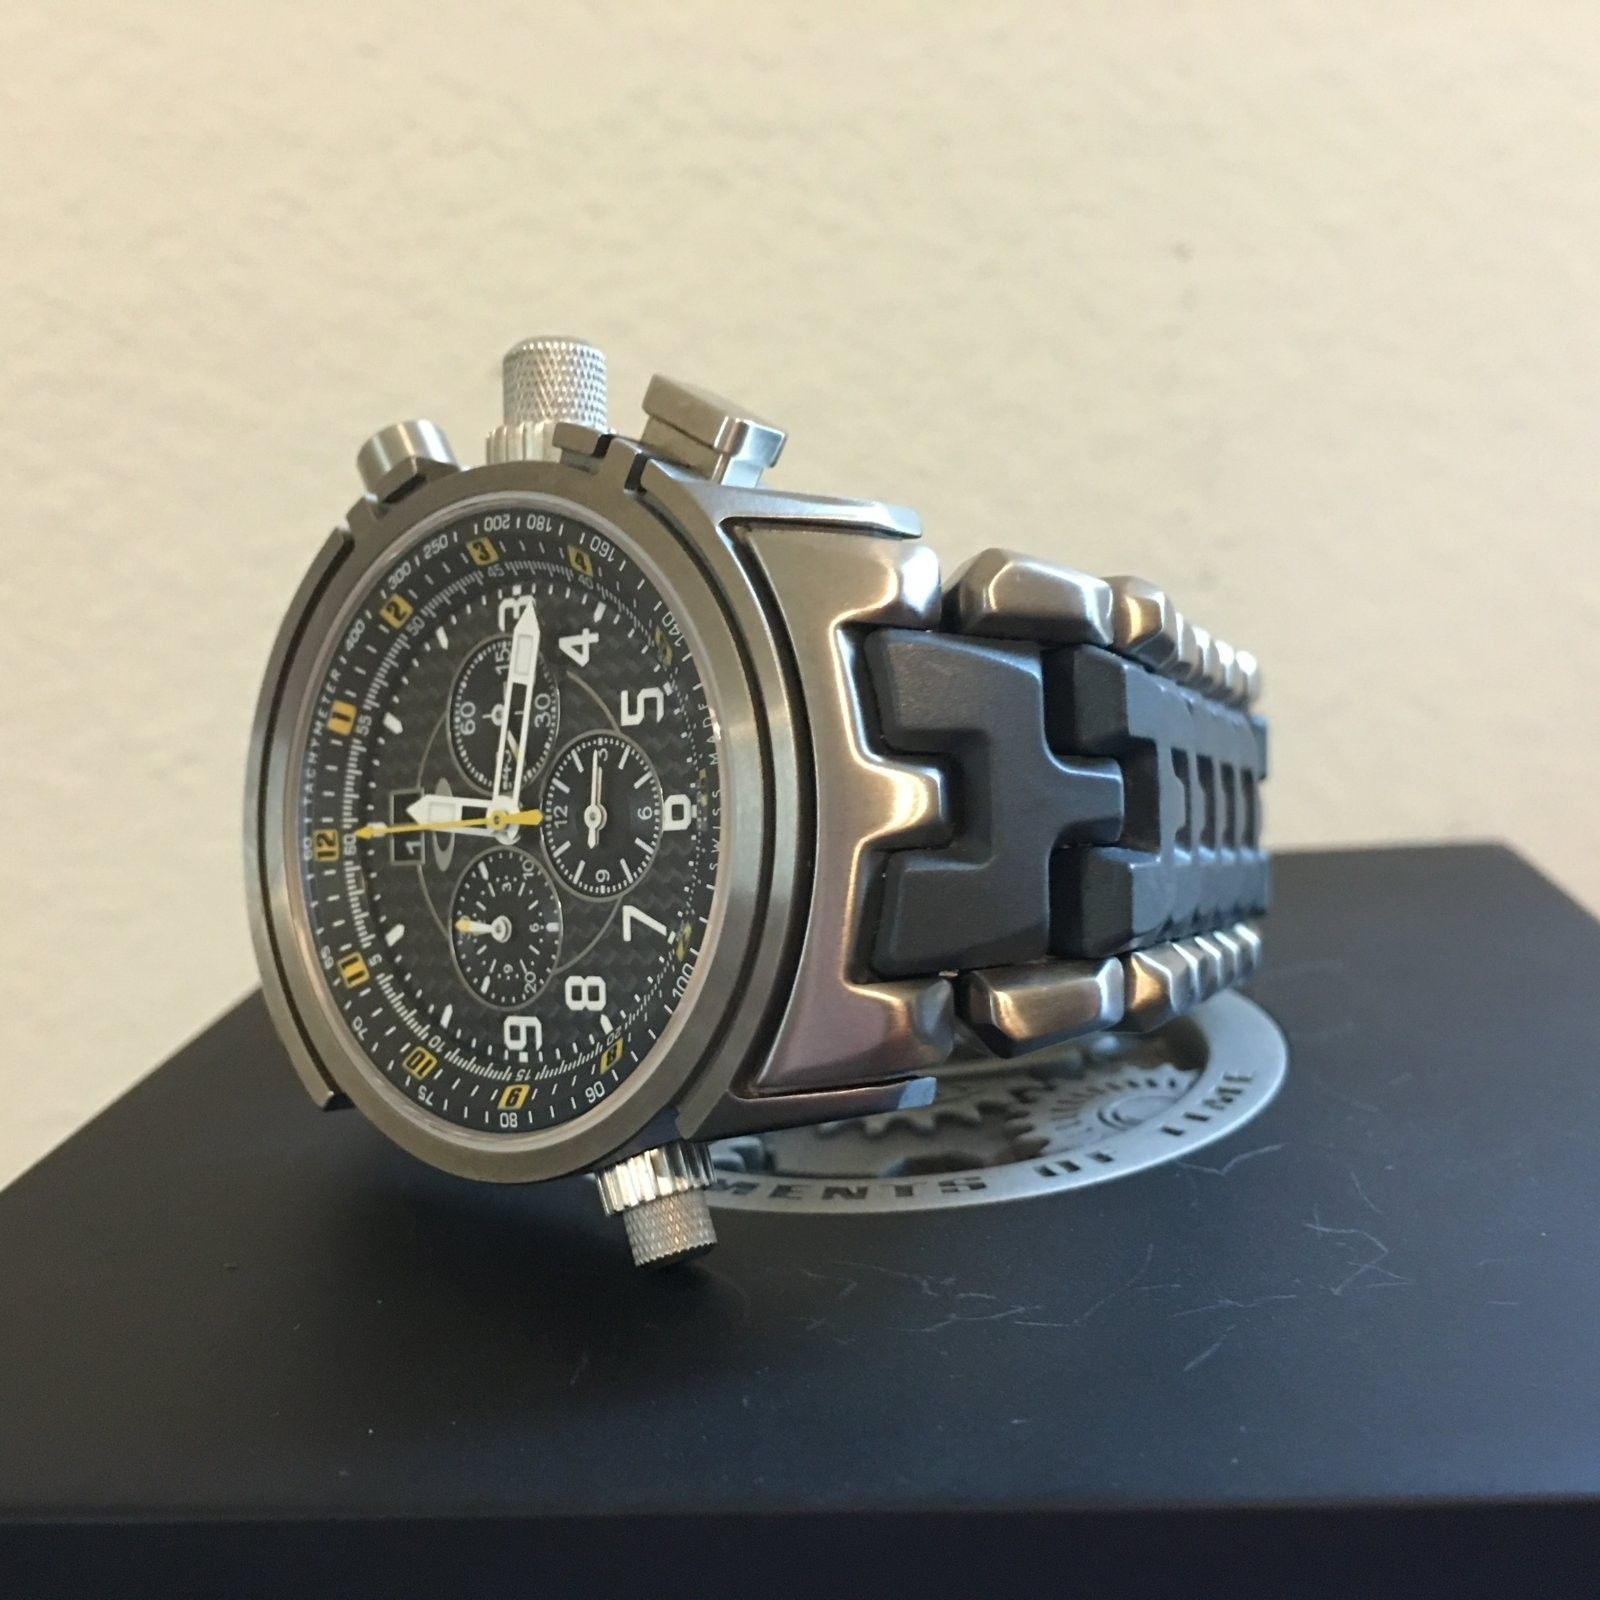 12-Gauge Special Edition Carbon Fiber/Yellow Dial (Free Watch Vault!) - IMG_0135.JPG